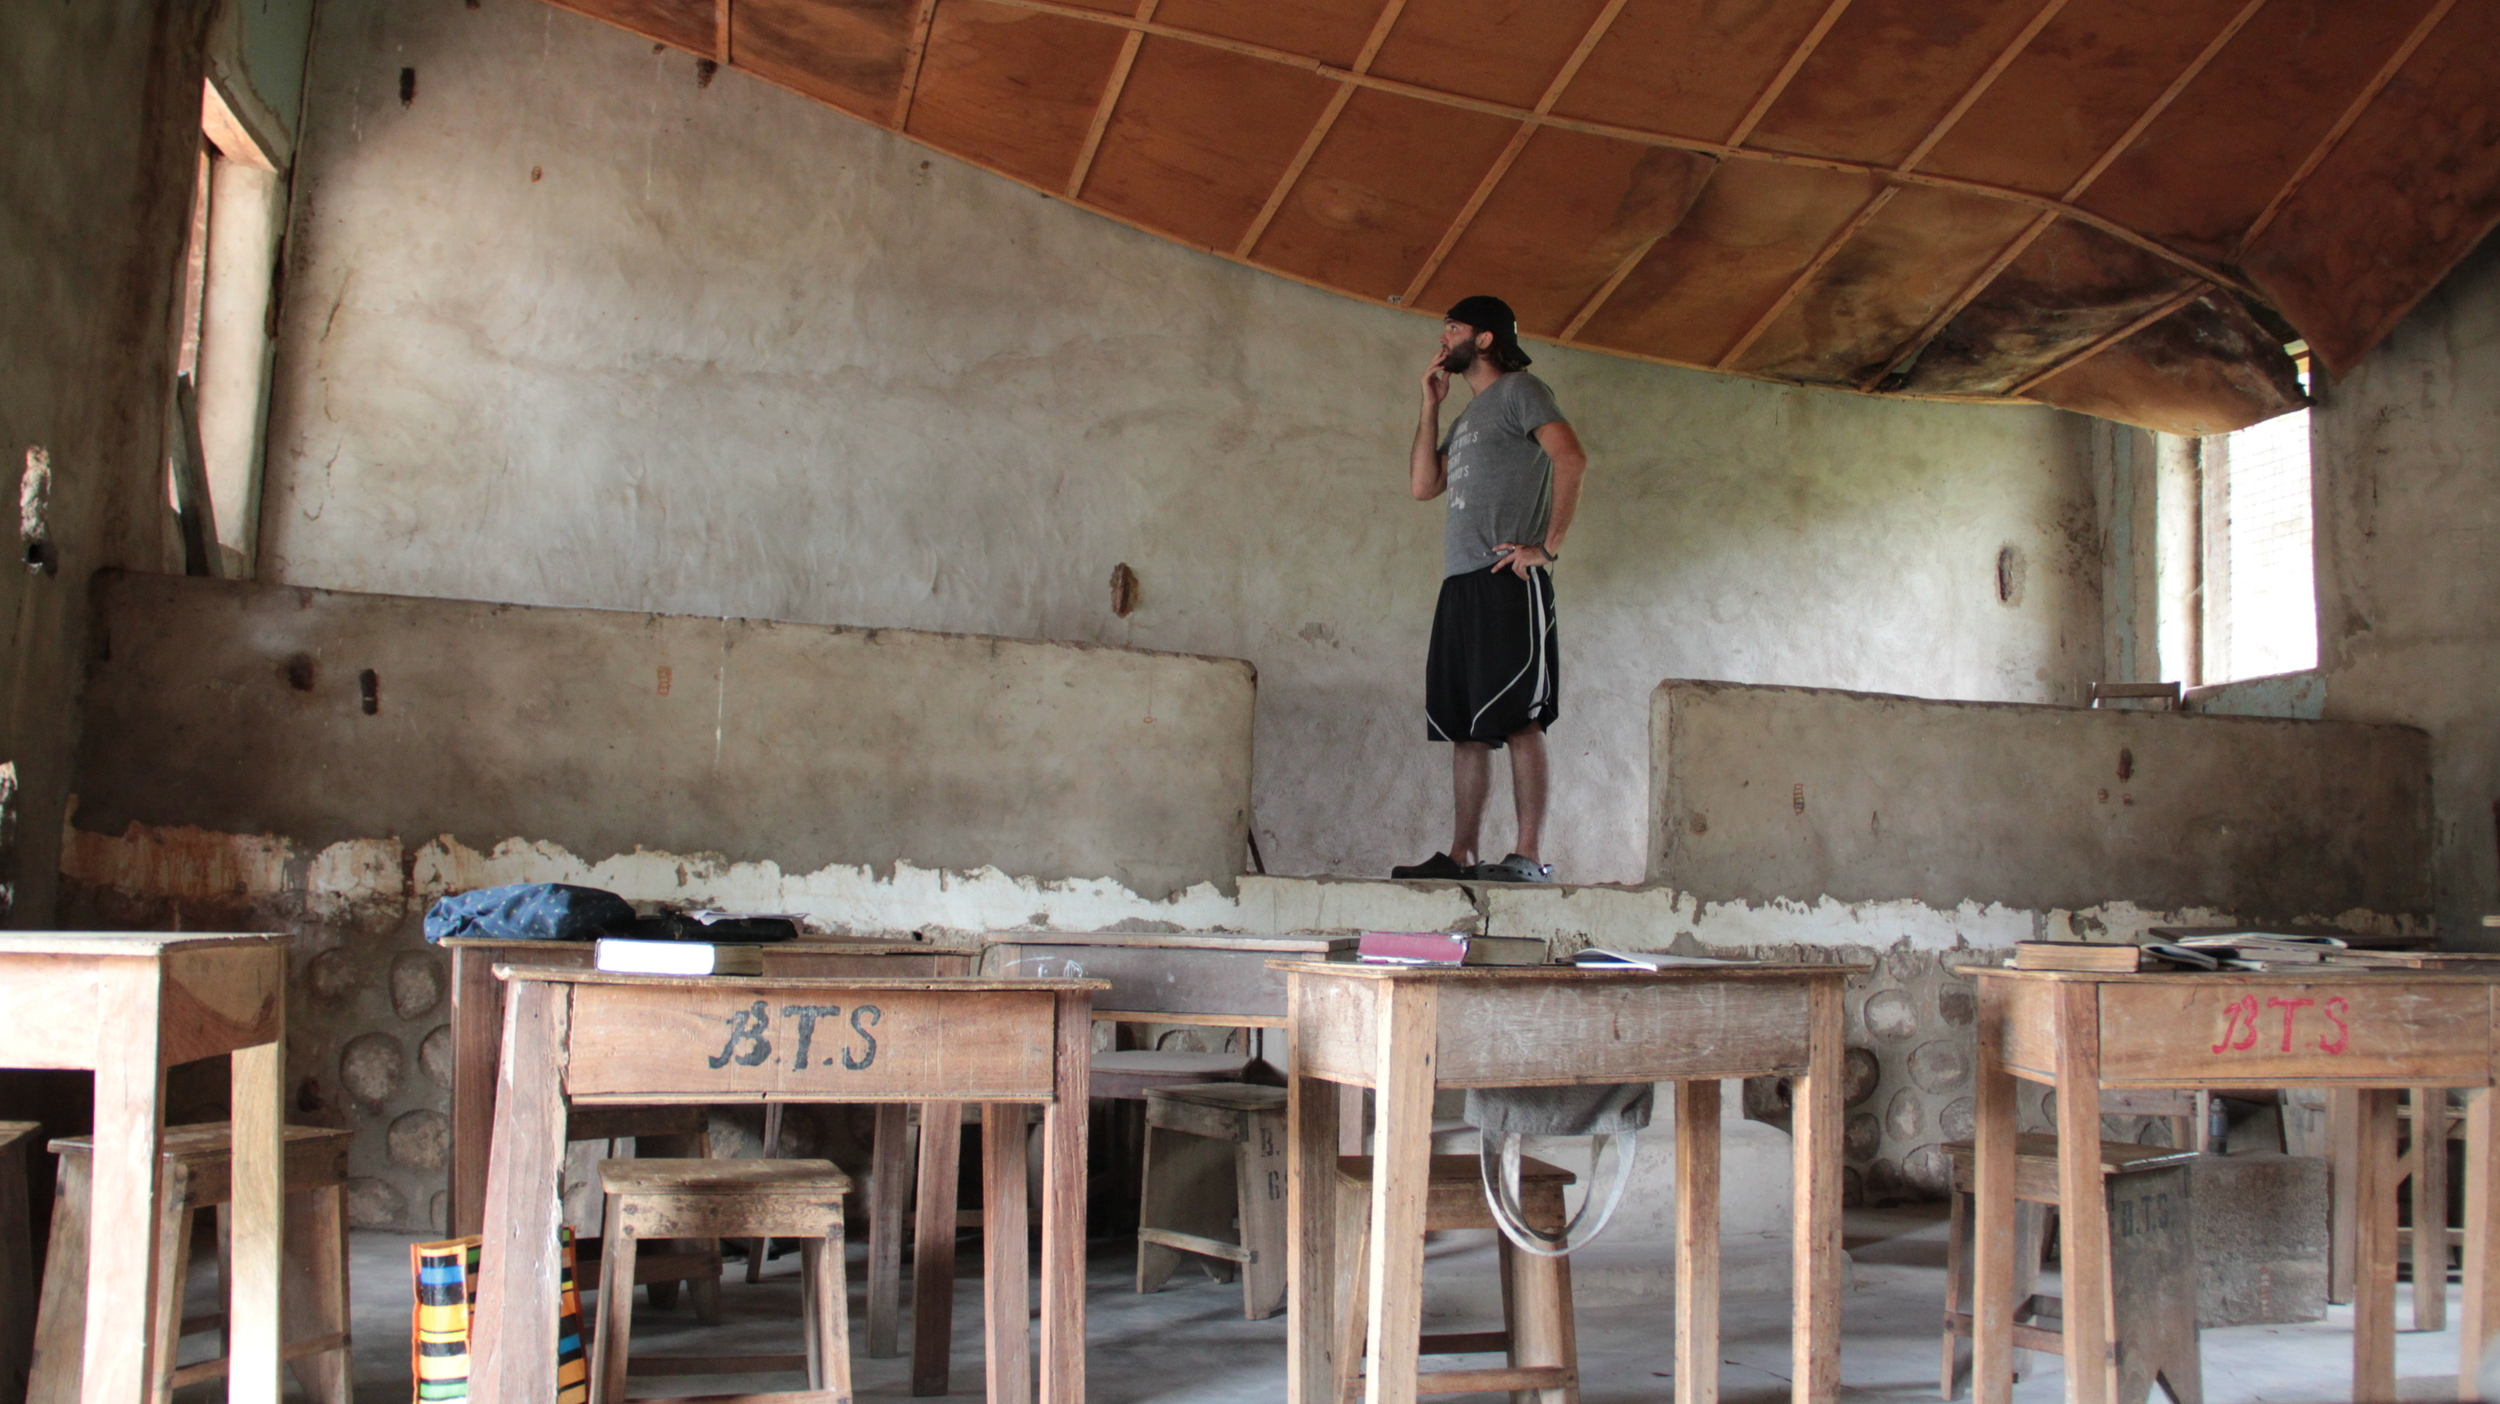 The hot & humid climate is hard on buildings.Here, a ceiling is rotting and collapsing in a classroom.